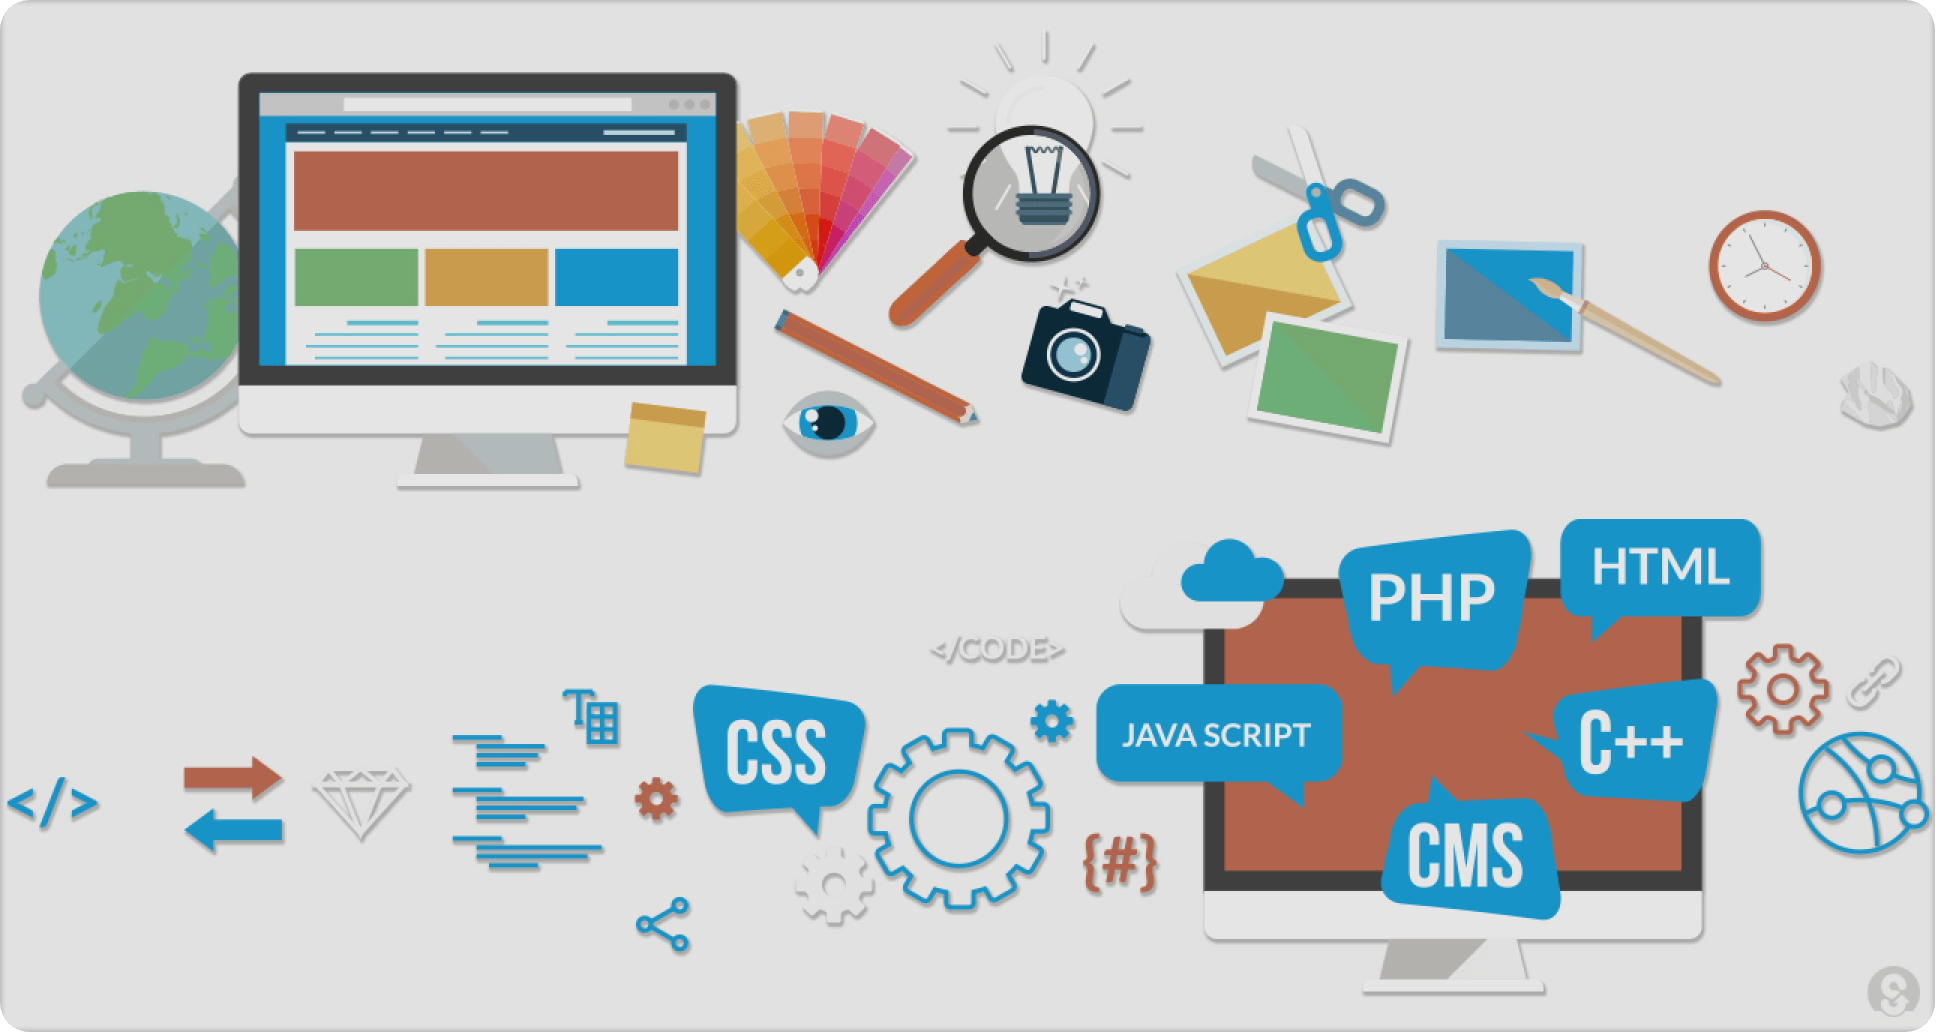 website-builders-platform-have-show-their-used-among-designers-and-developers